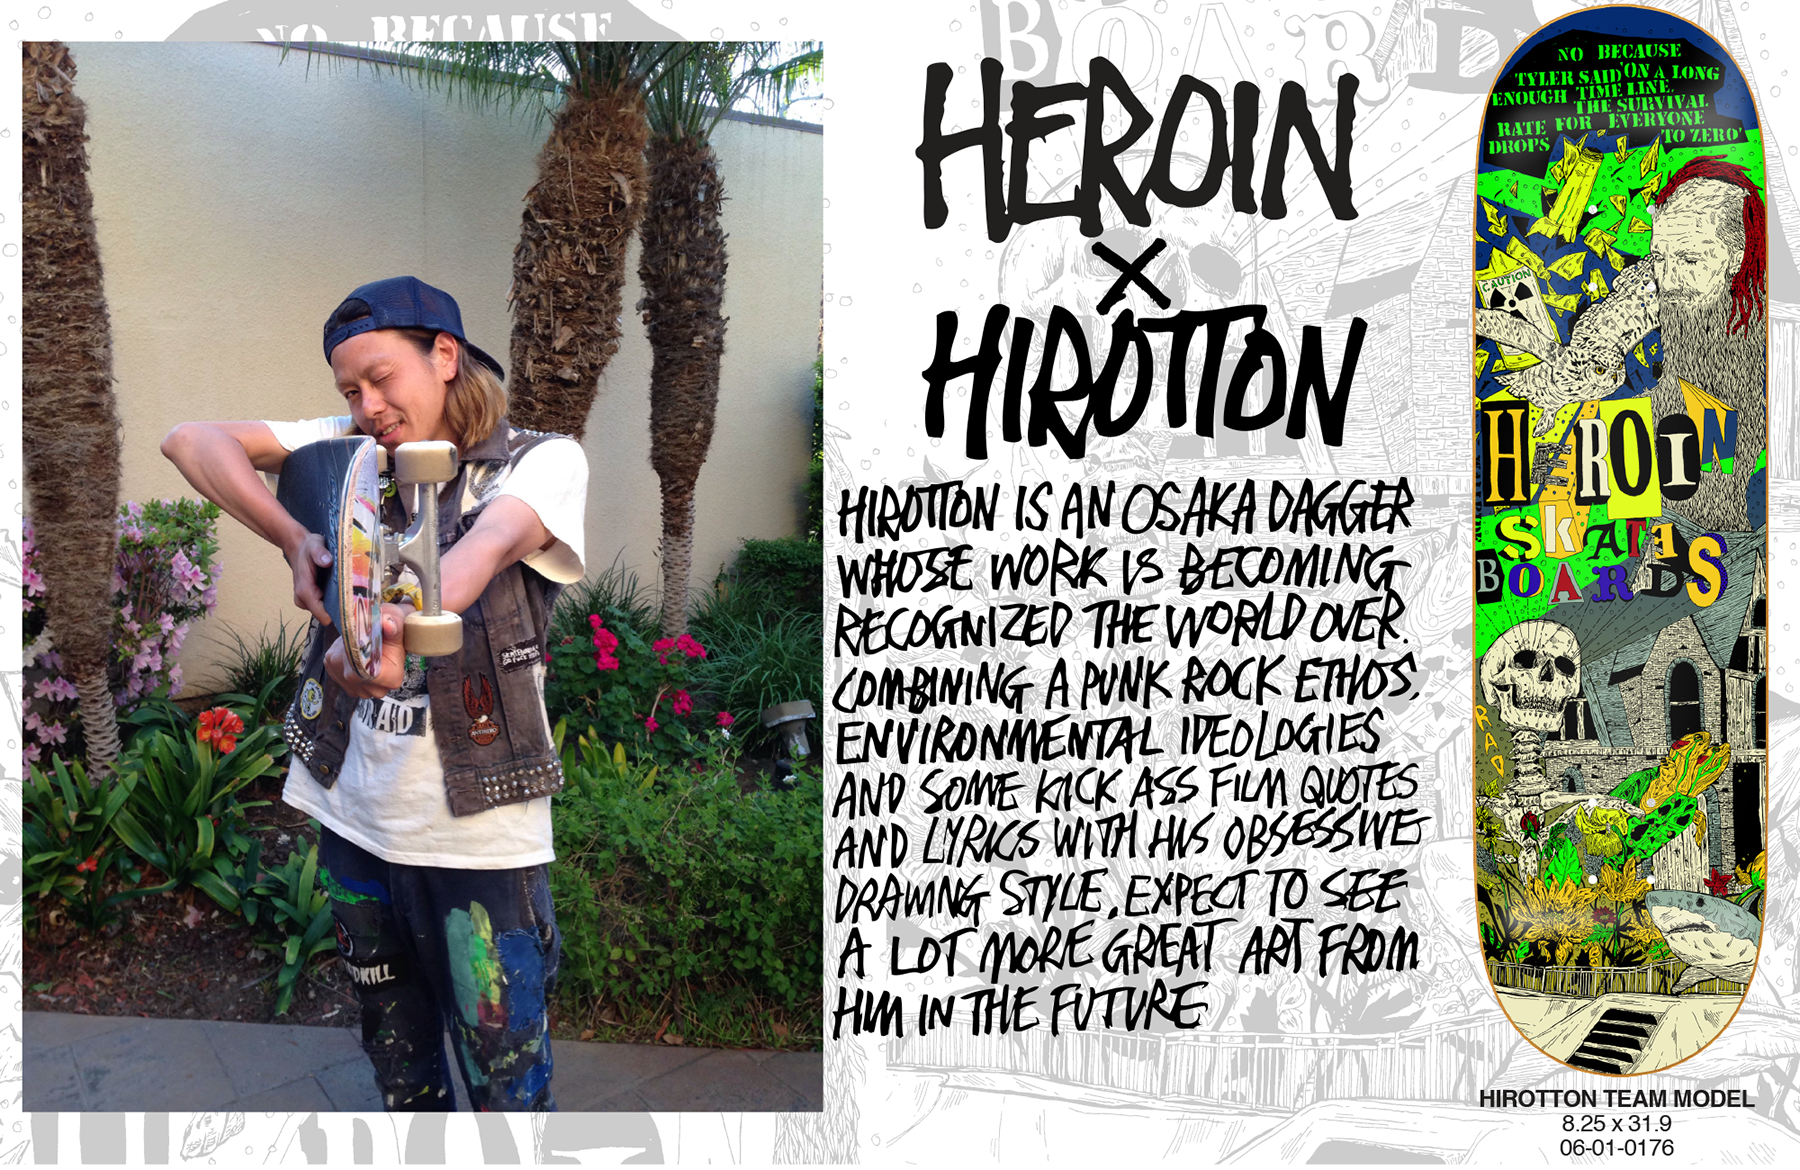 57c692185410317a109c7f05_Heroin-x-Hirotton_Page